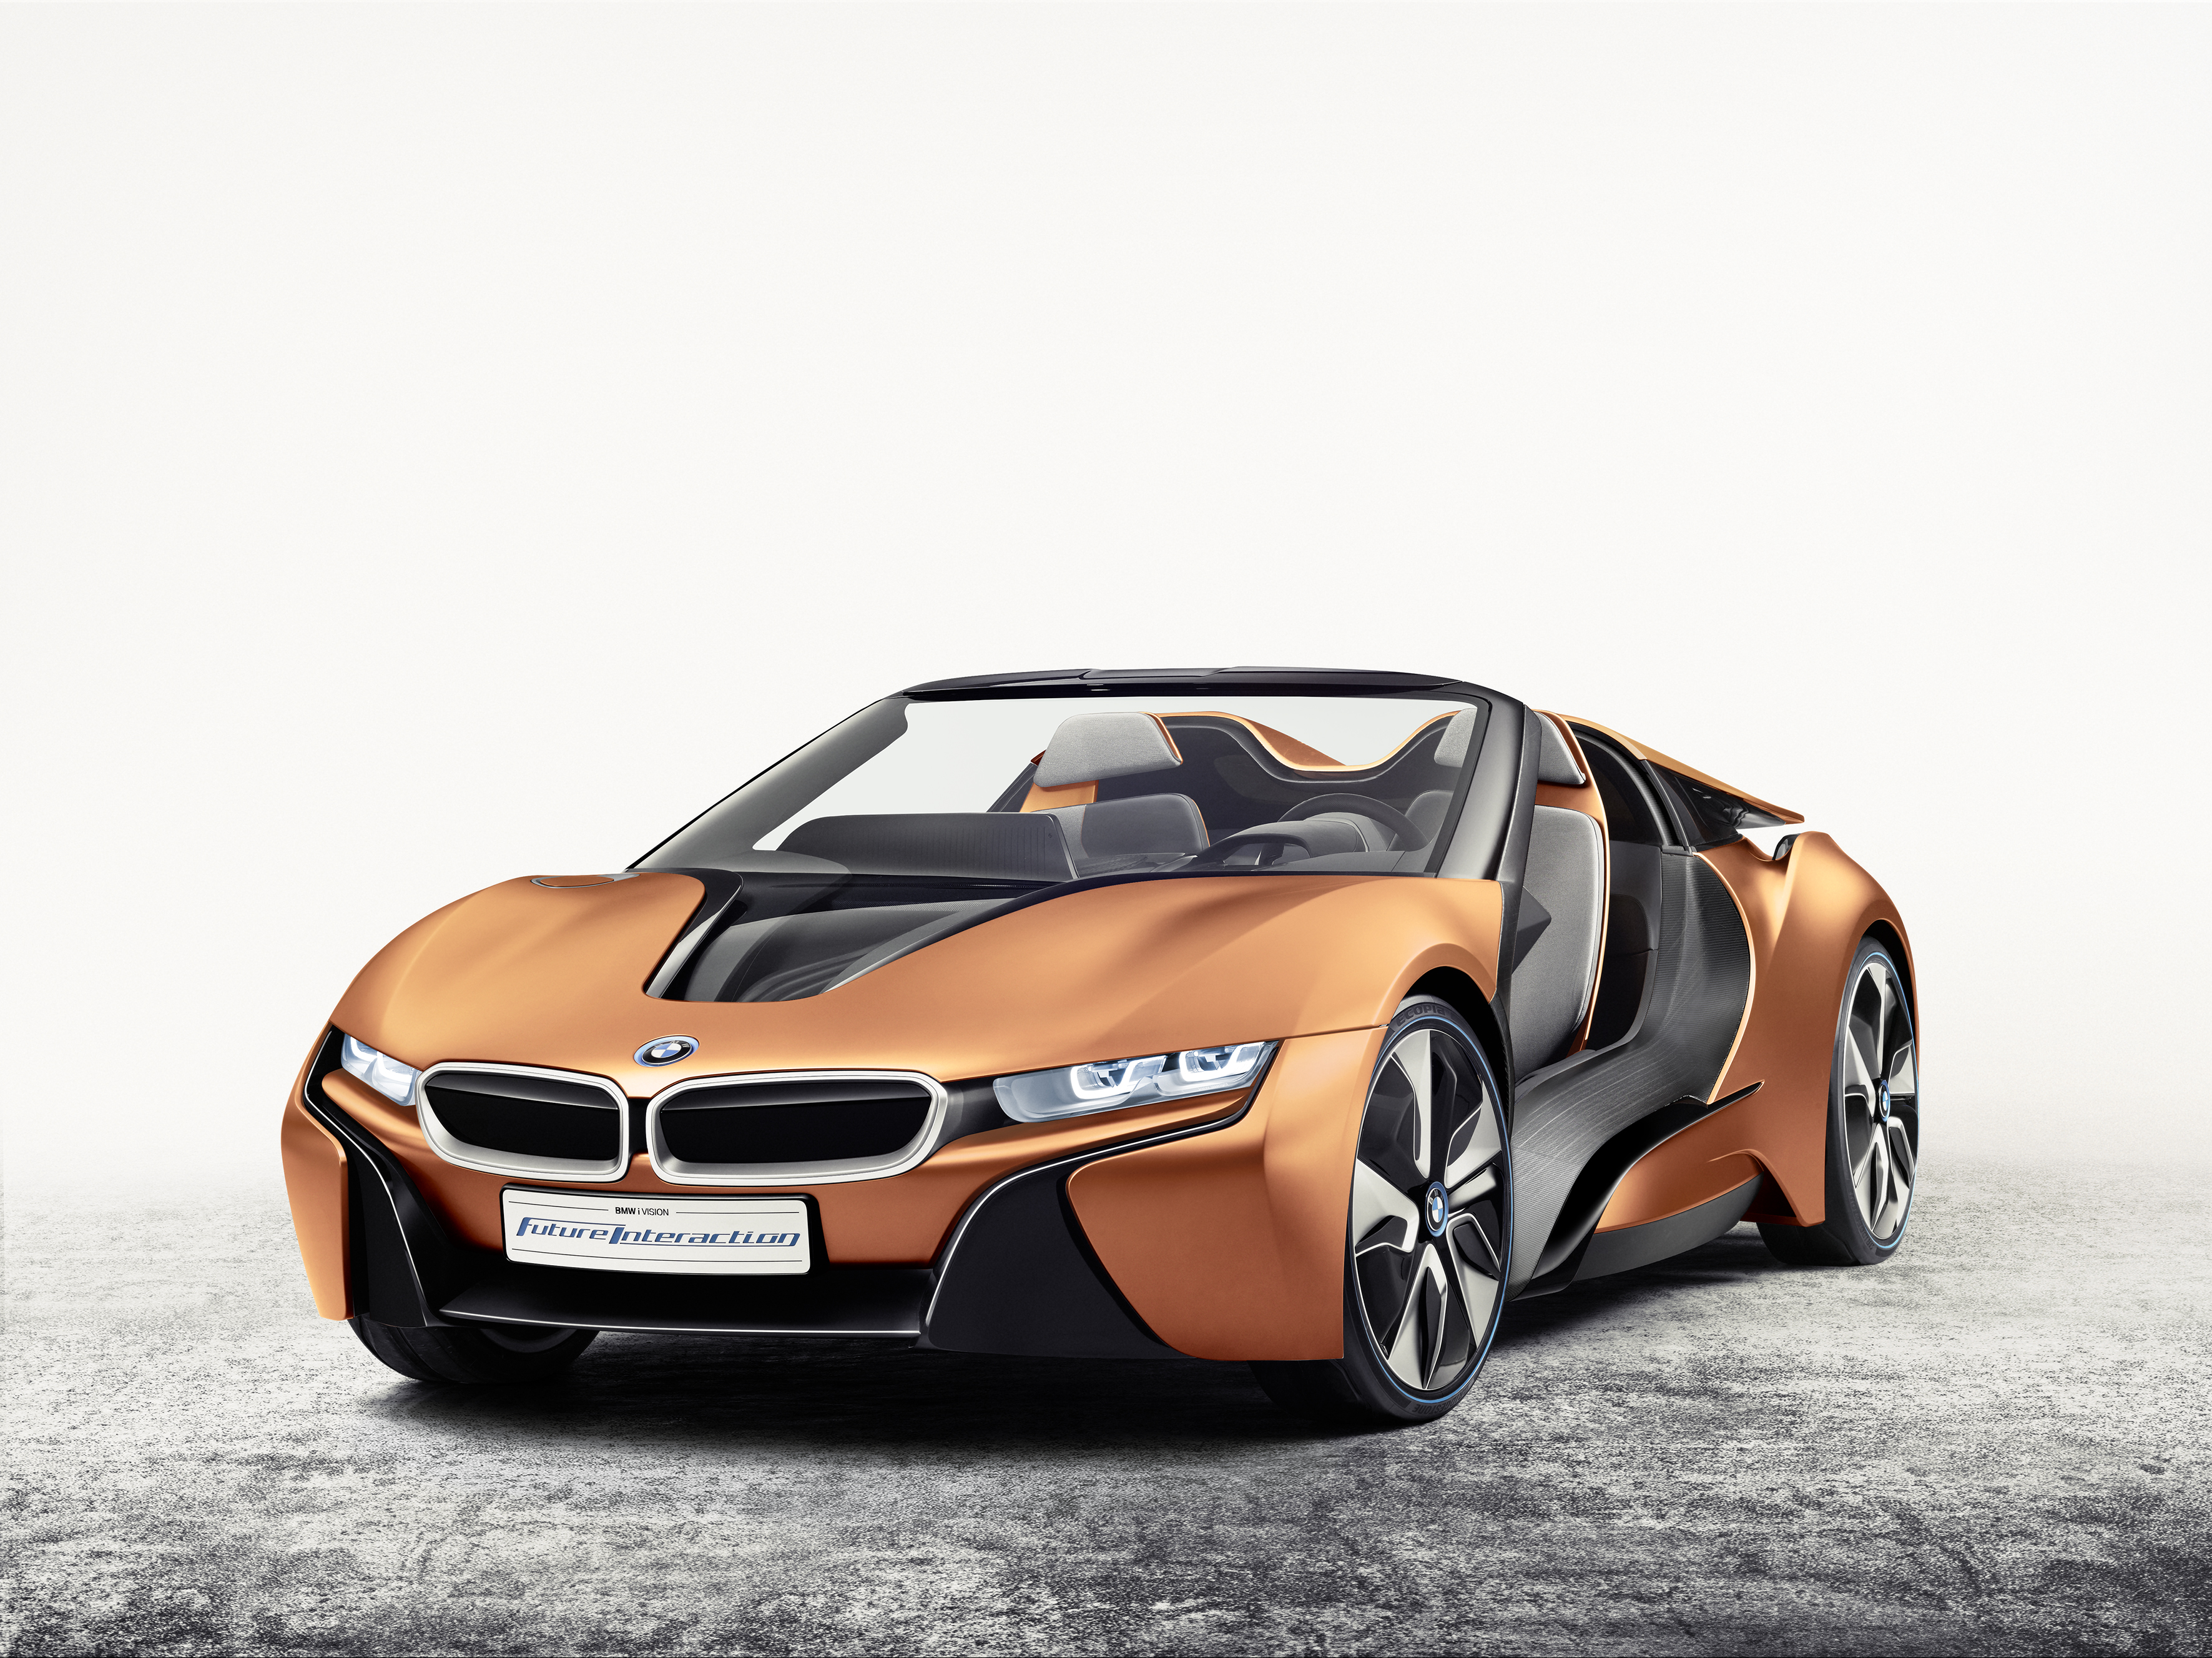 Hands On Bmw Self Driving Concept Car Available For Viewing In